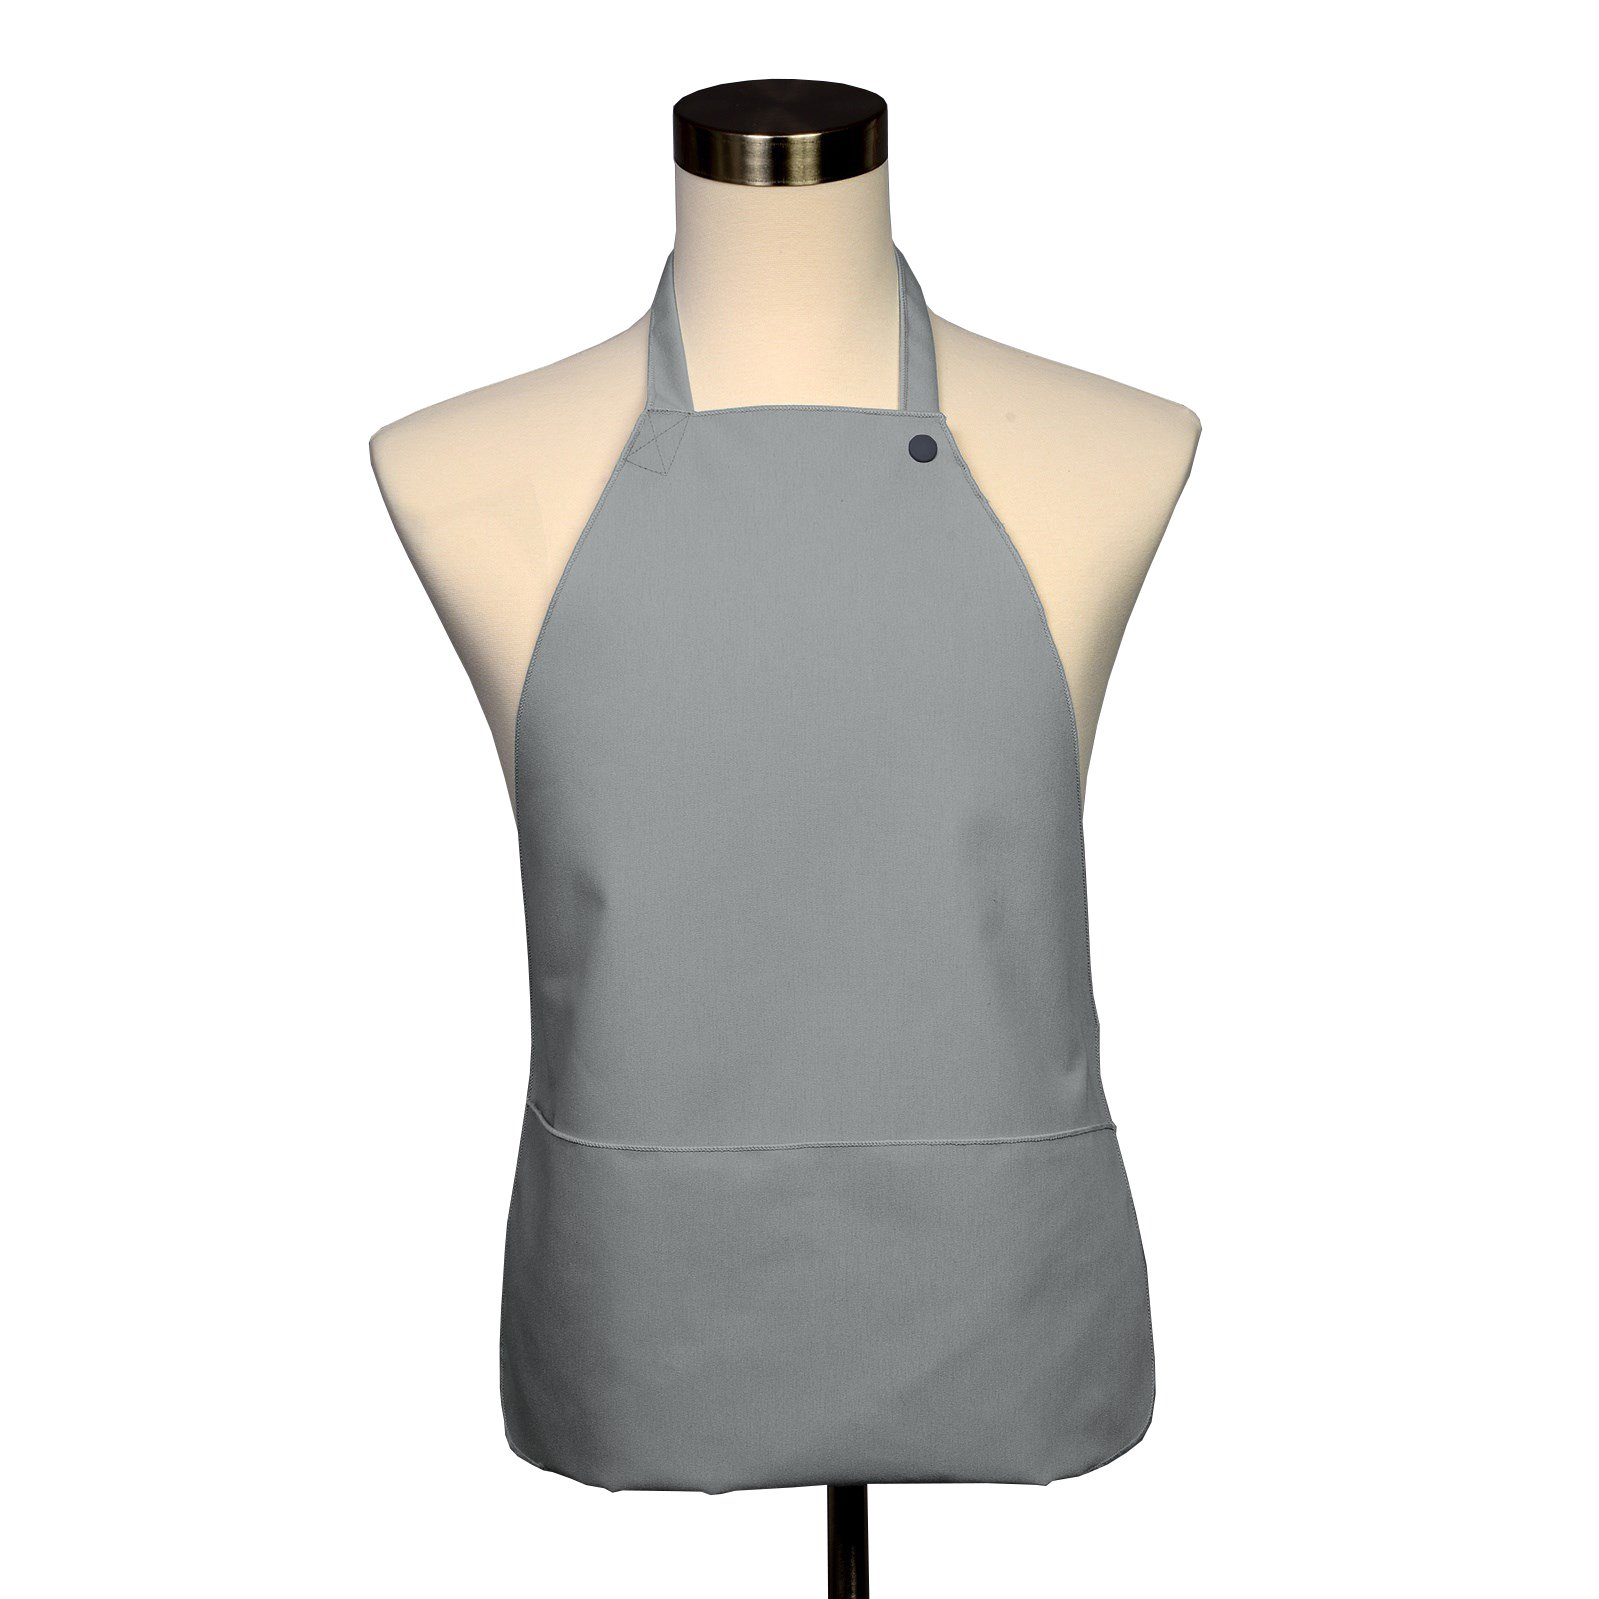 Adult Bib 10 Pack - Covered with Care Assorted Colors Available! (Gray)